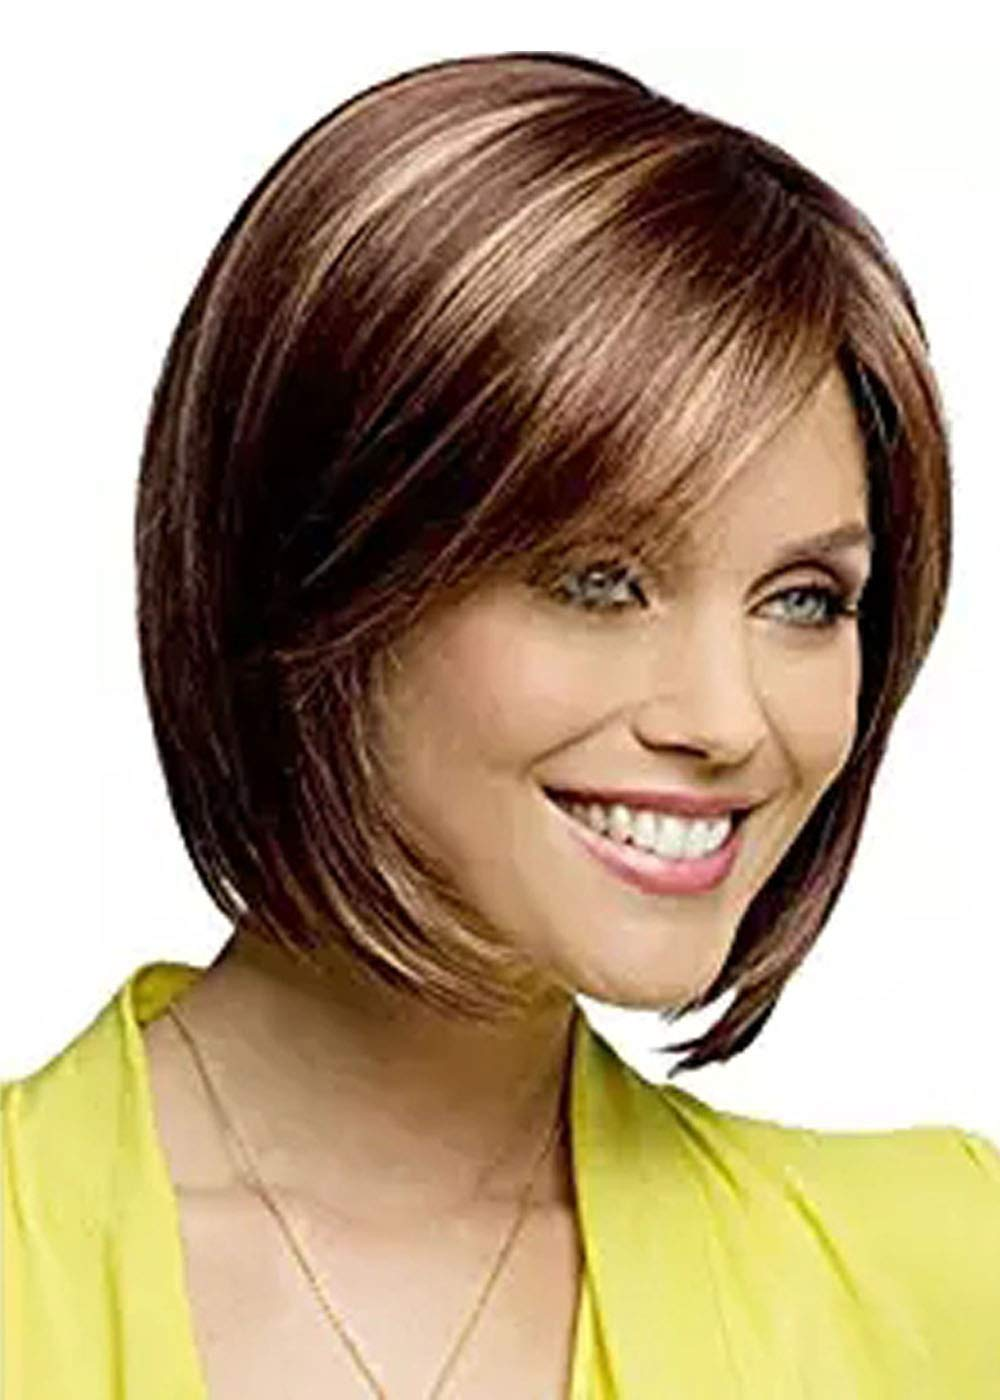 MILISI Blonde Bob Wigs for White Women Short Straight Synthetic Hair Wig With Bangs Cosplay Costume Premium full Wigs + 1 Free Wig Cap ALS